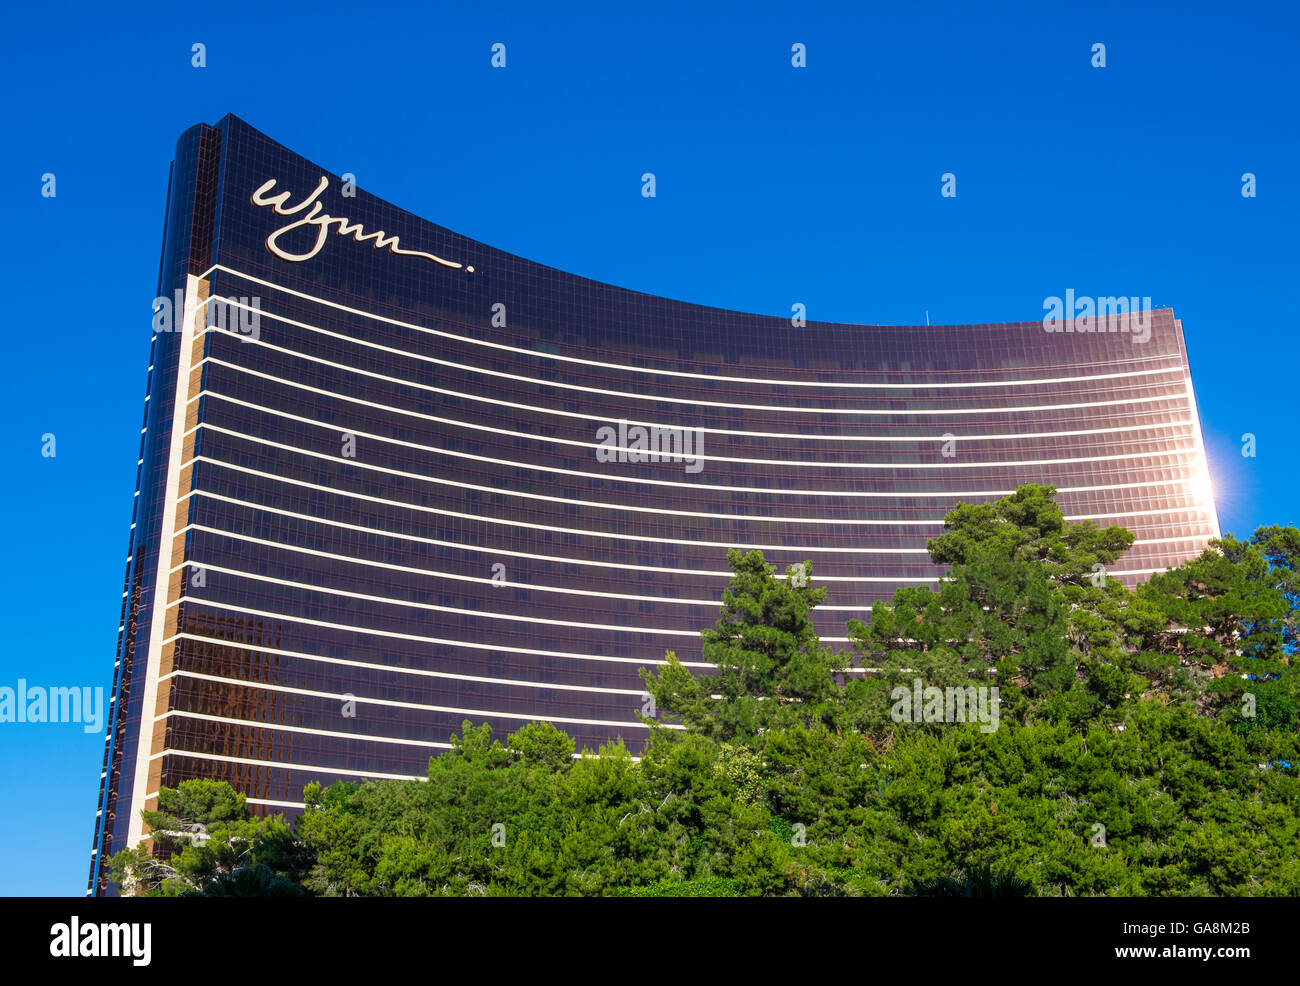 LAS VEGAS - MAY 21 : The Wynn Hotel and casino on May 21 , 2016 in Las Vegas. The hotel has 2,716 rooms and opened - Stock Image